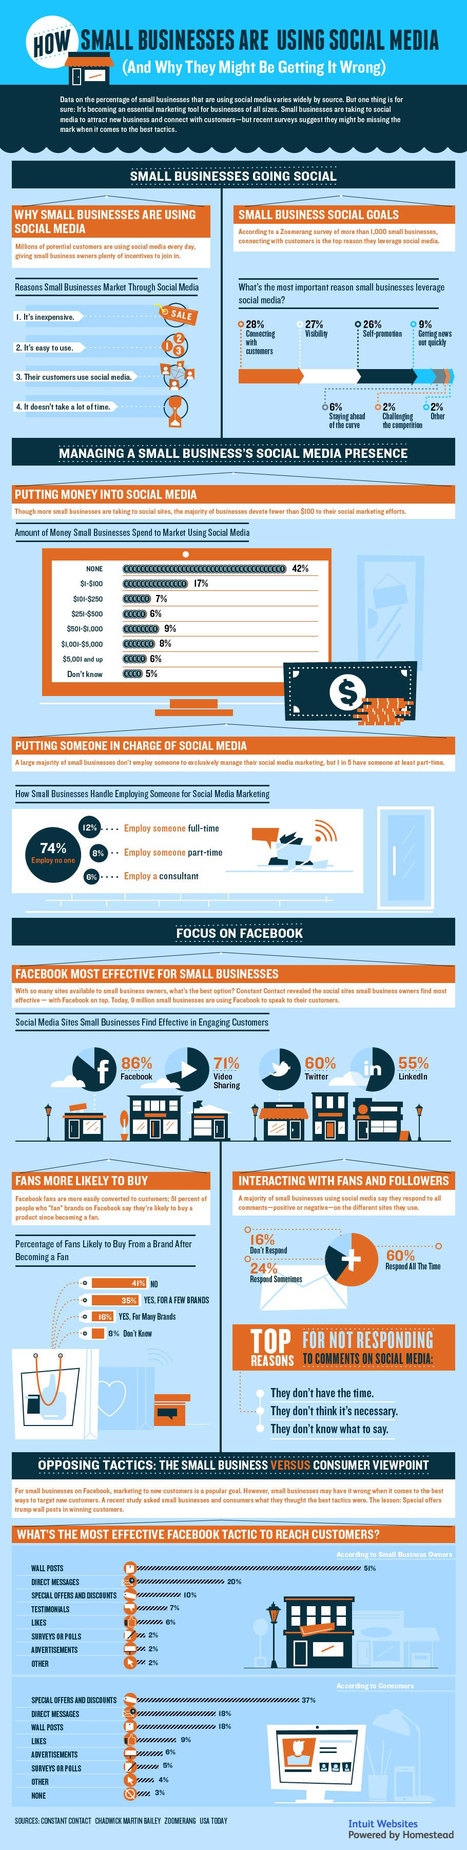 How Are Small Businesses Using Social Media (And What Are They Doing Wrong)? [INFOGRAPHIC] | Marketing RH 2.0 & Marque employeur | Scoop.it